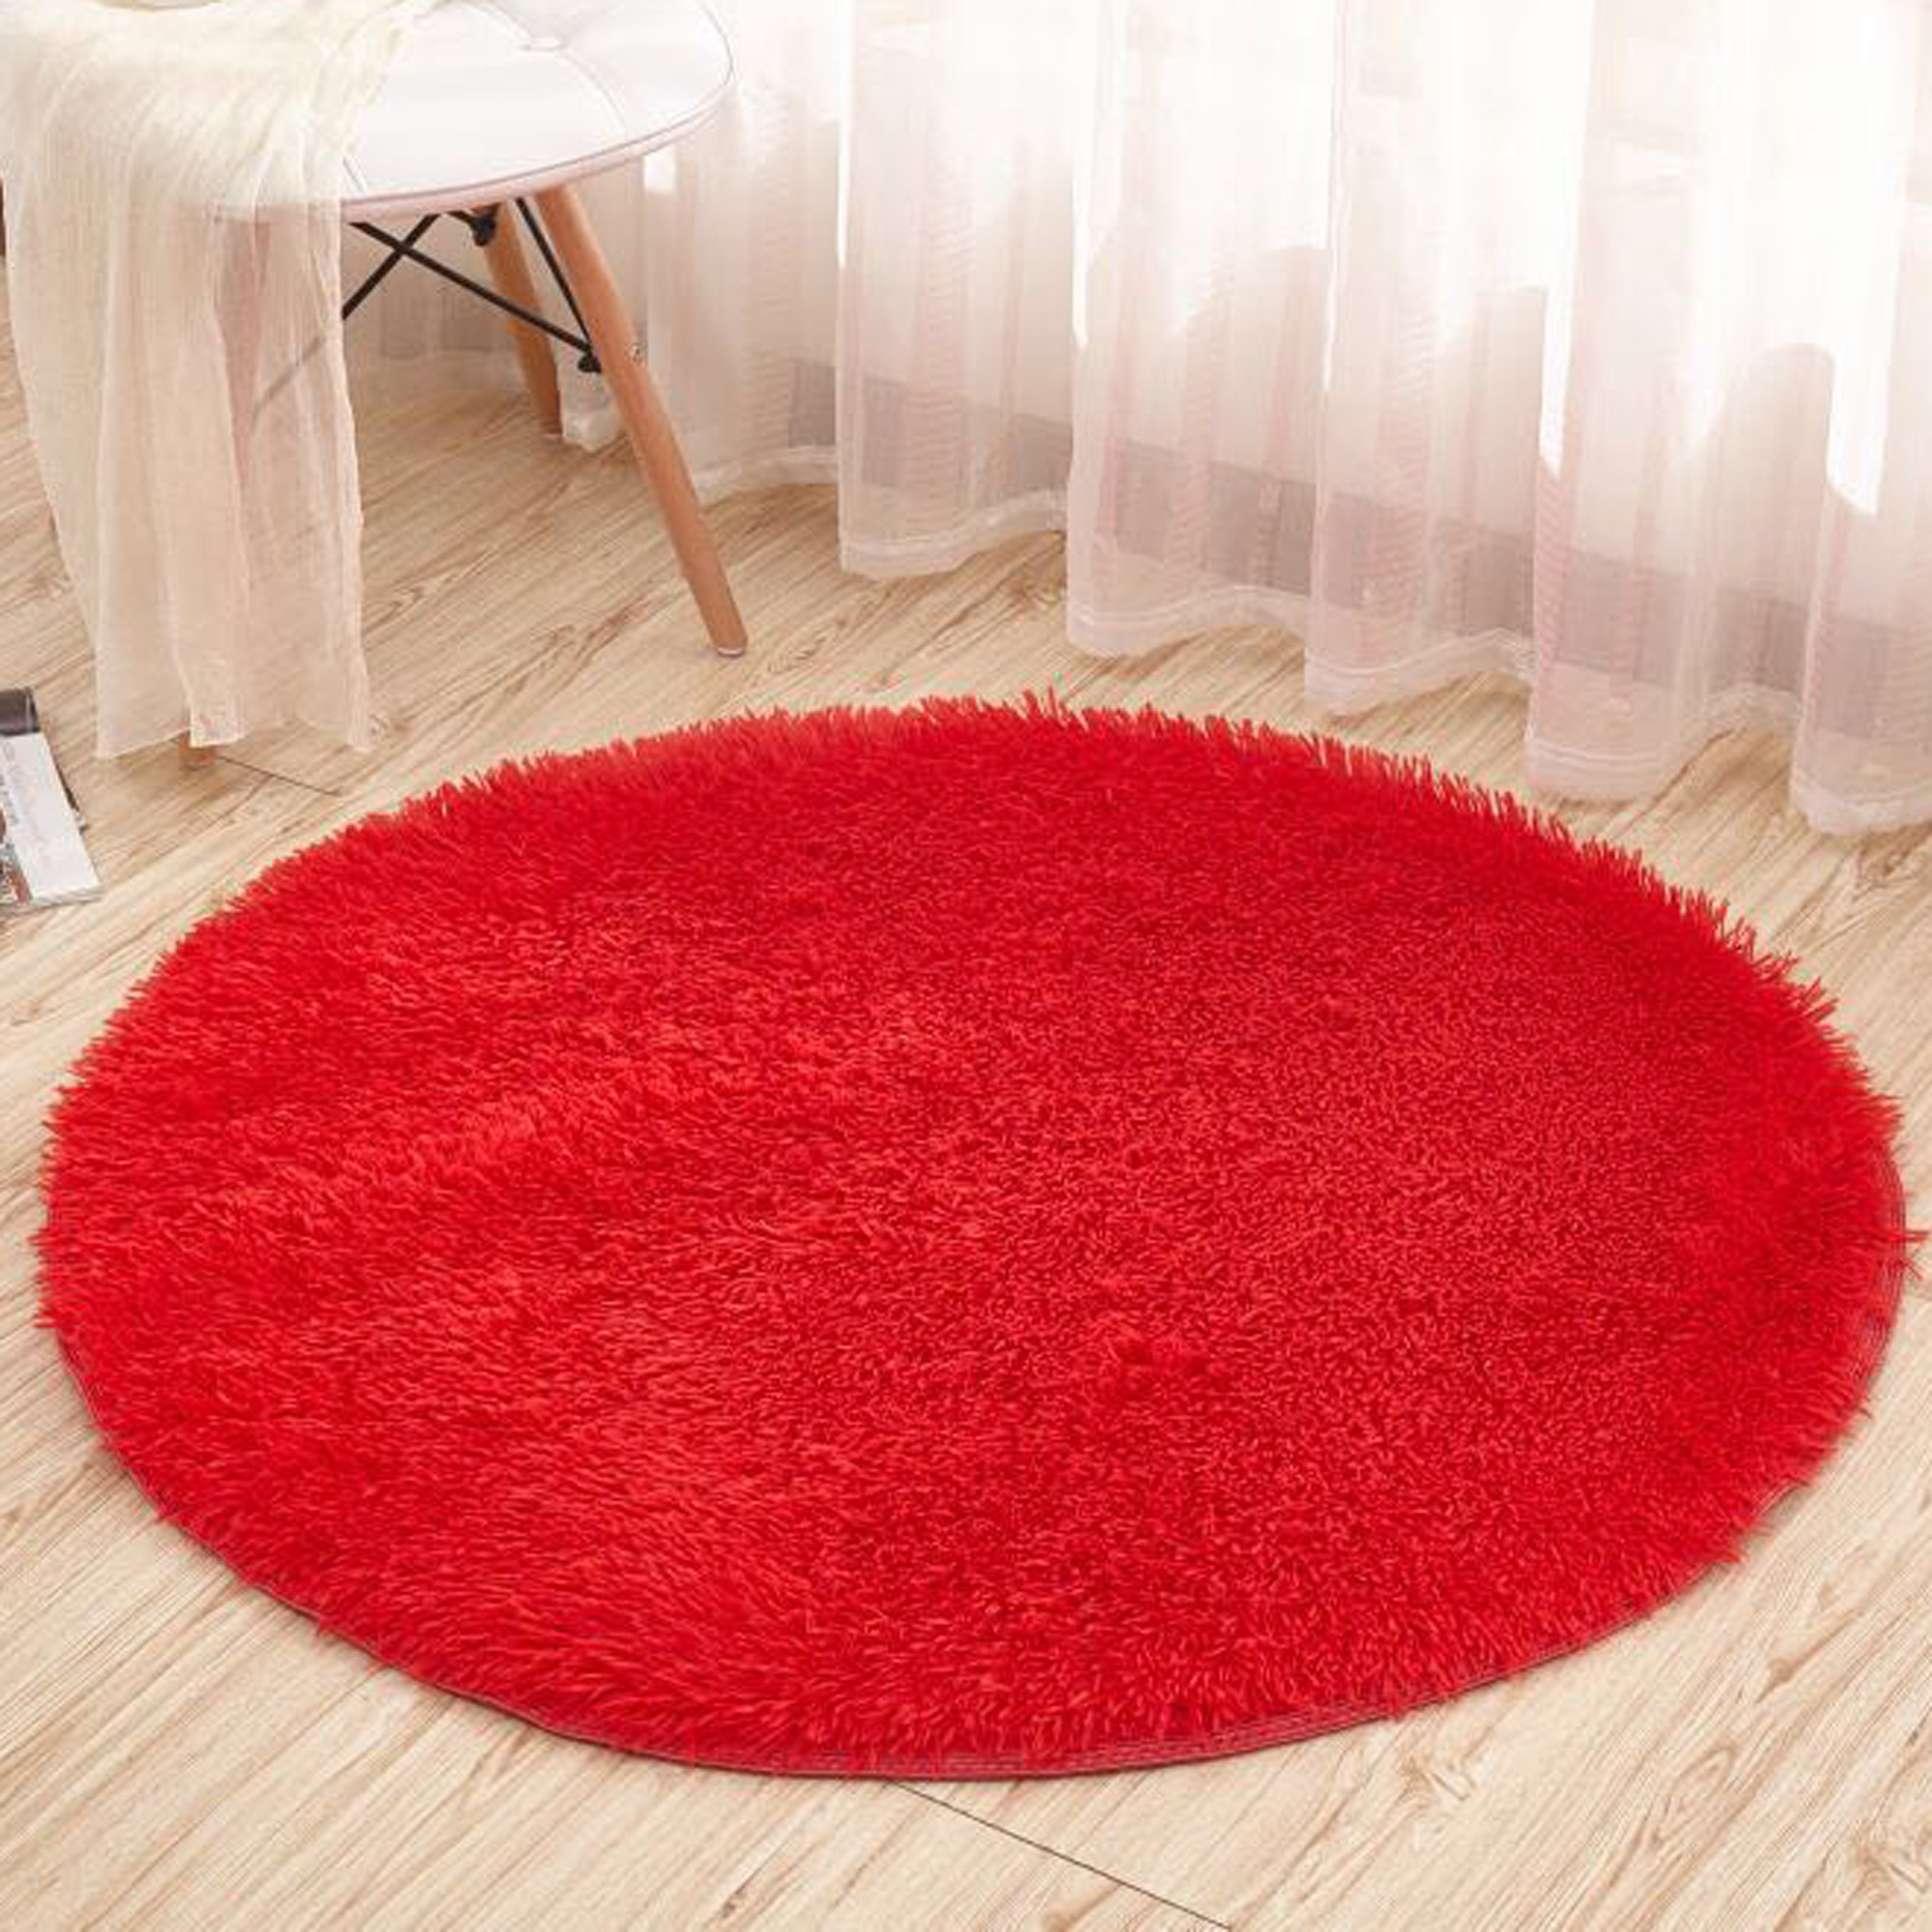 Dodoing Super Soft Round Area Rugs For Bedroom Kids Rooms Living Room Playroom Fluffy Boys Girls Baby Kids Children Rugs For Bedroom Home Nursery D Cor Carpet For Women Pink Red Blue White